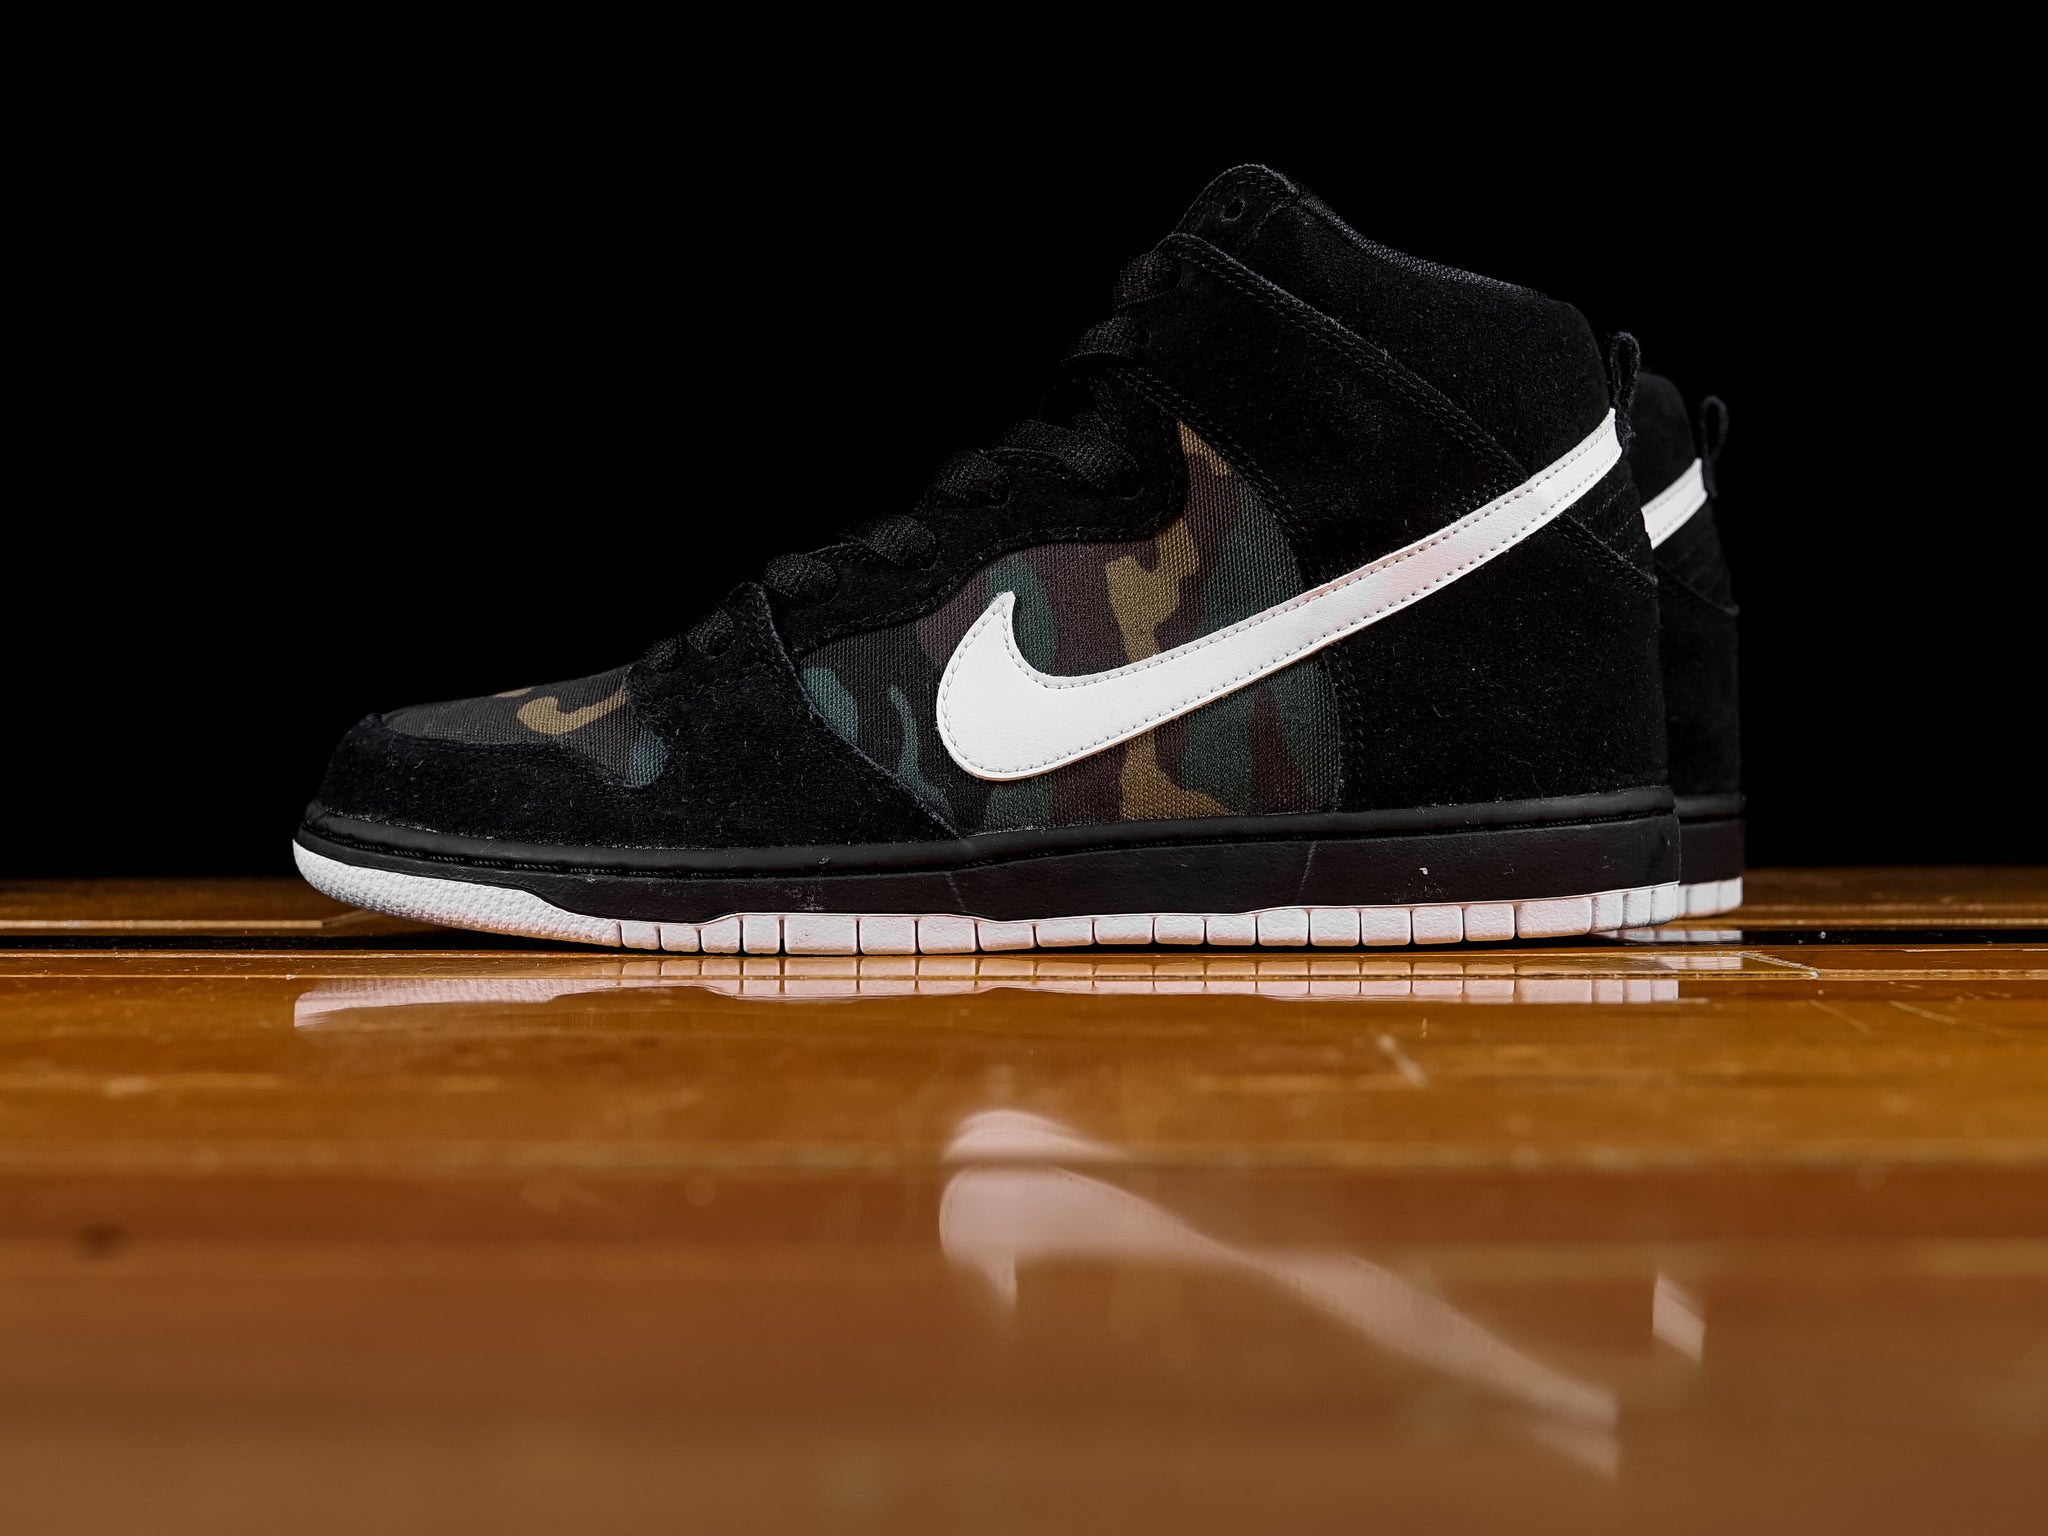 hot sale online 245a5 c057a Men's Nike SB Dunk High Pro 'Camo' [BQ6826-001]